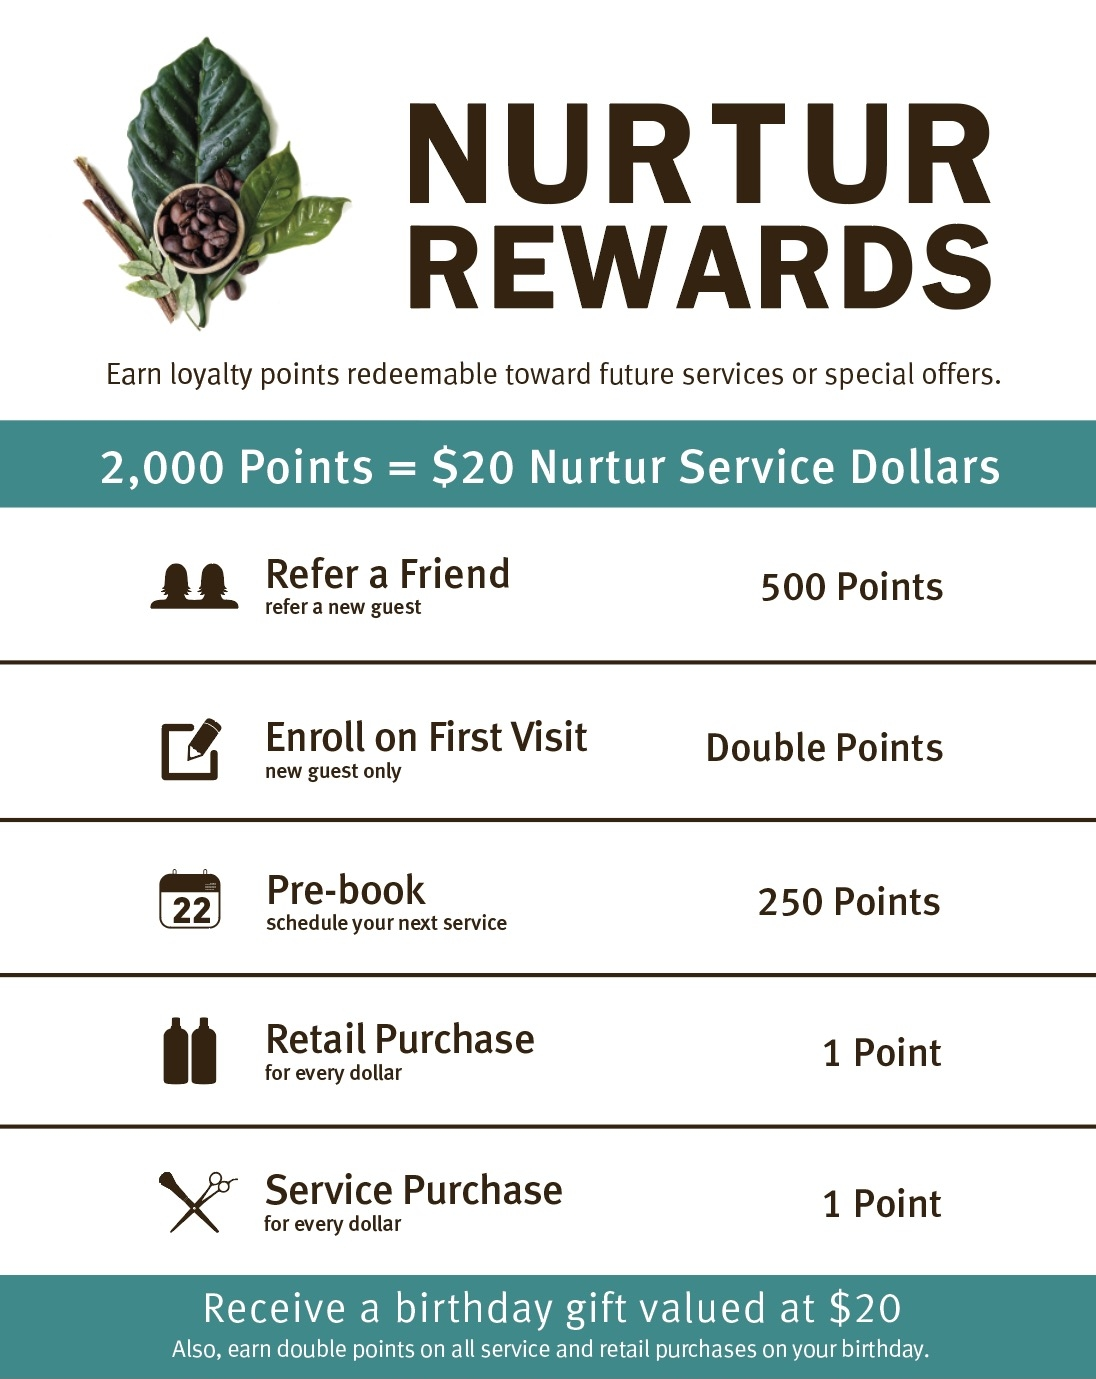 Nurtur Rewards